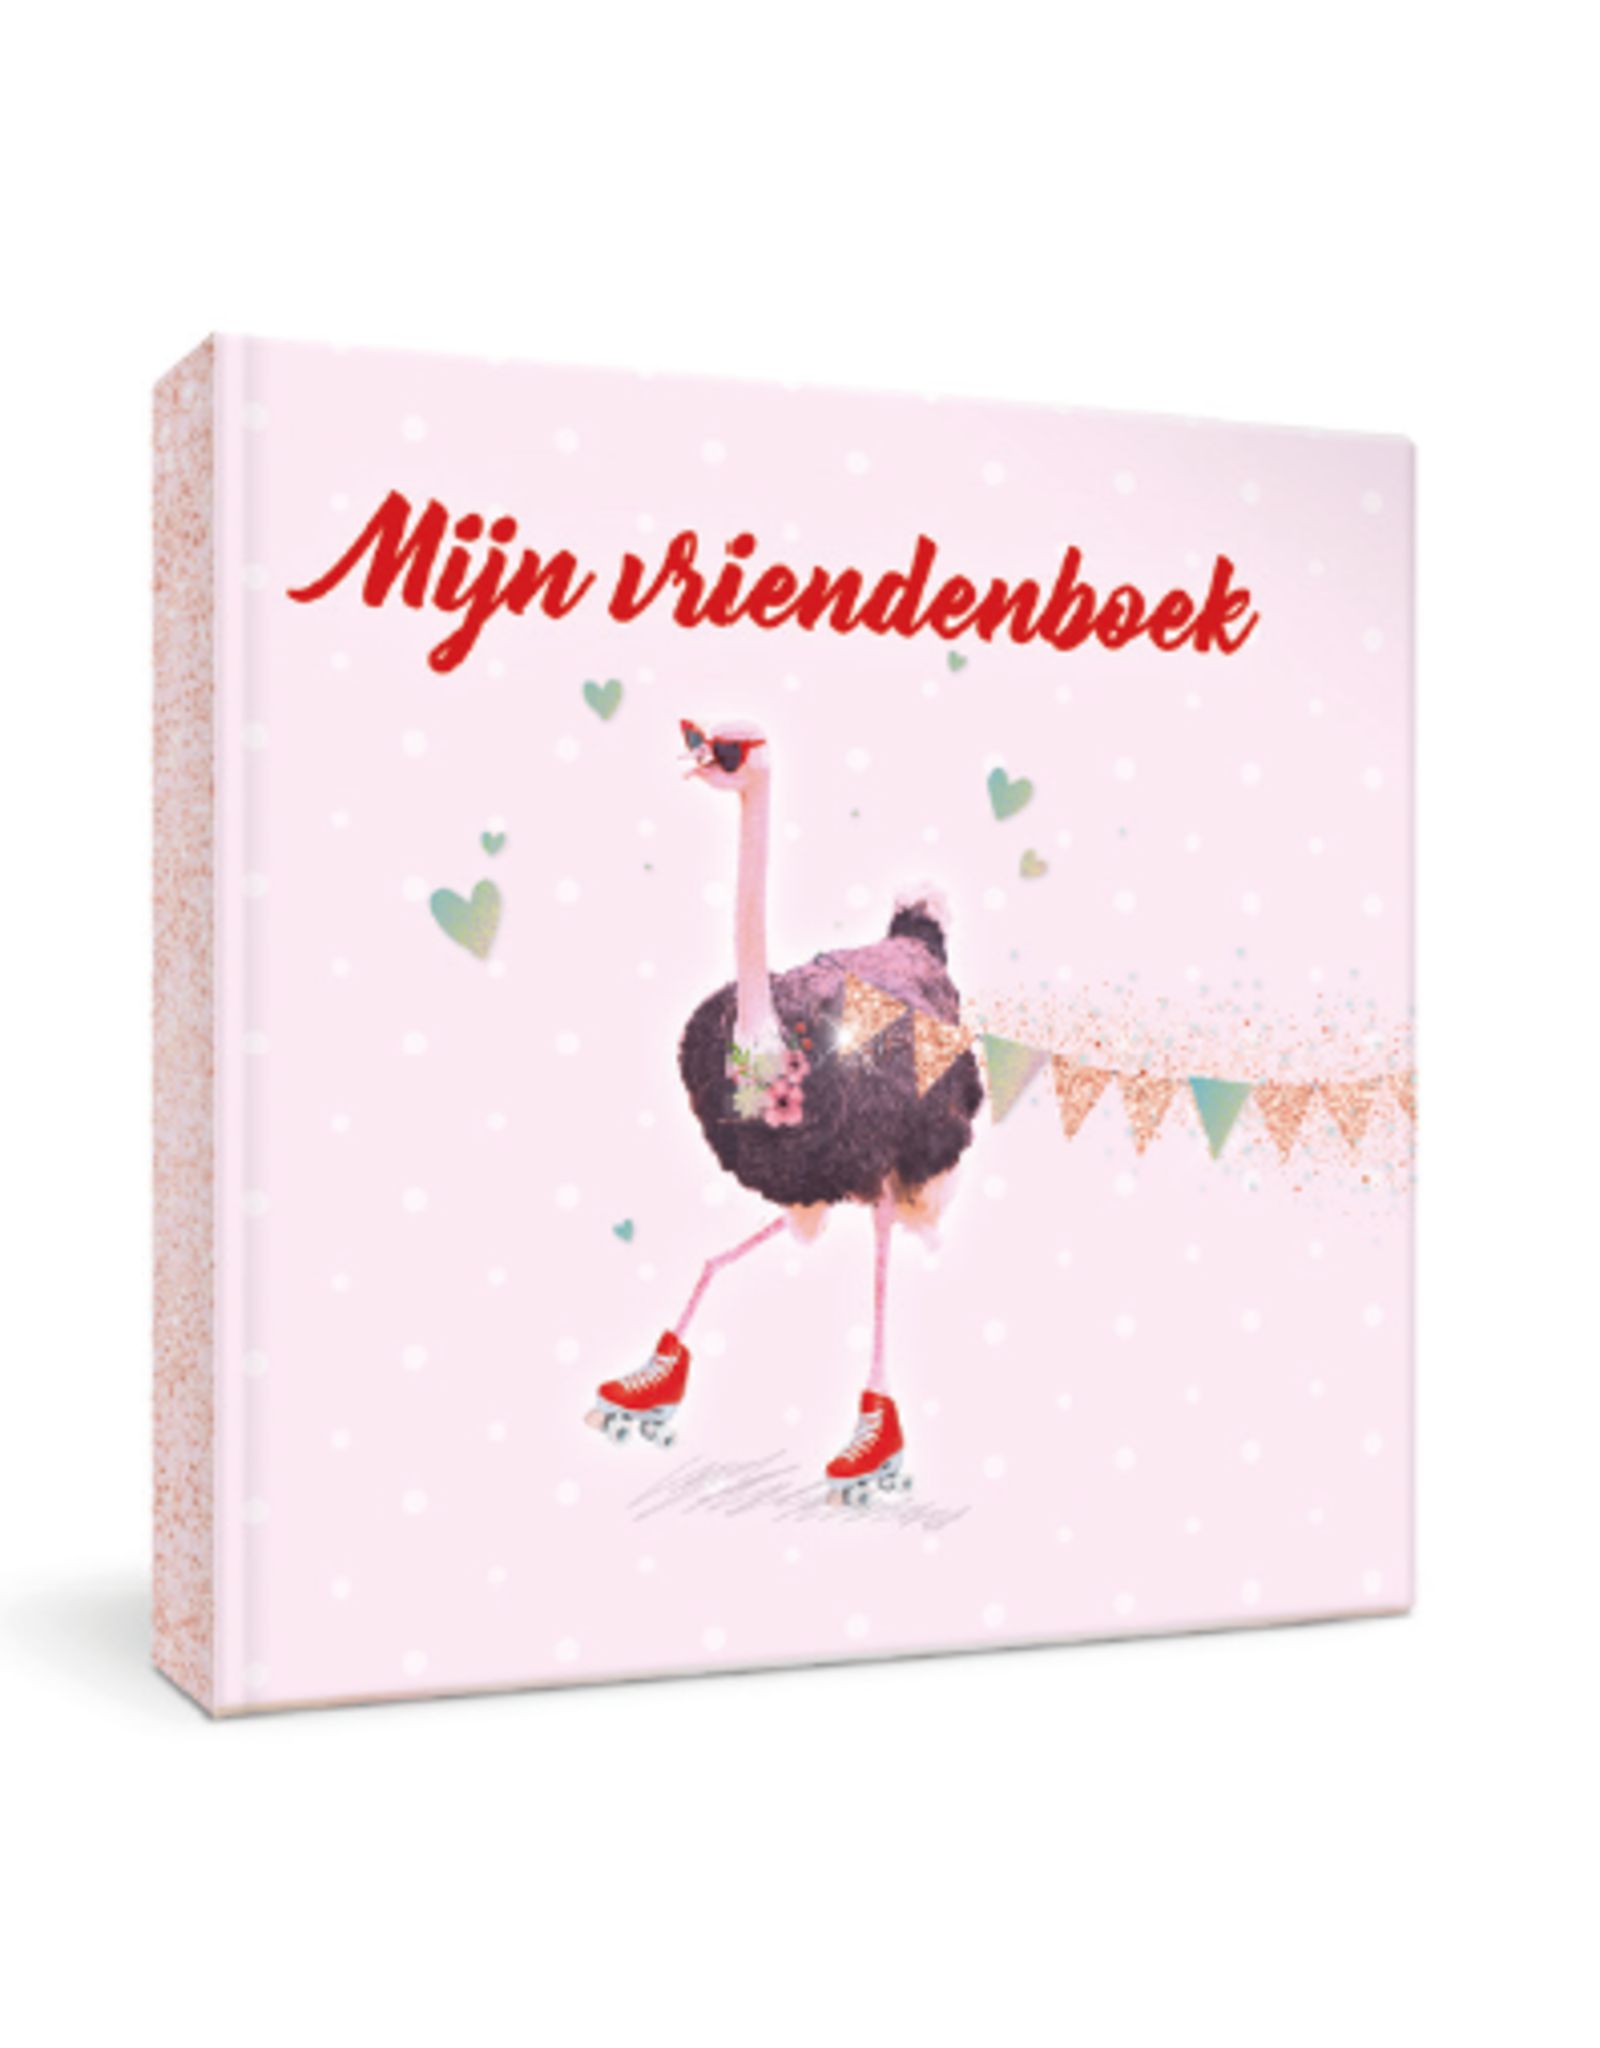 Enfant terrible Vriendenboek struisvogel